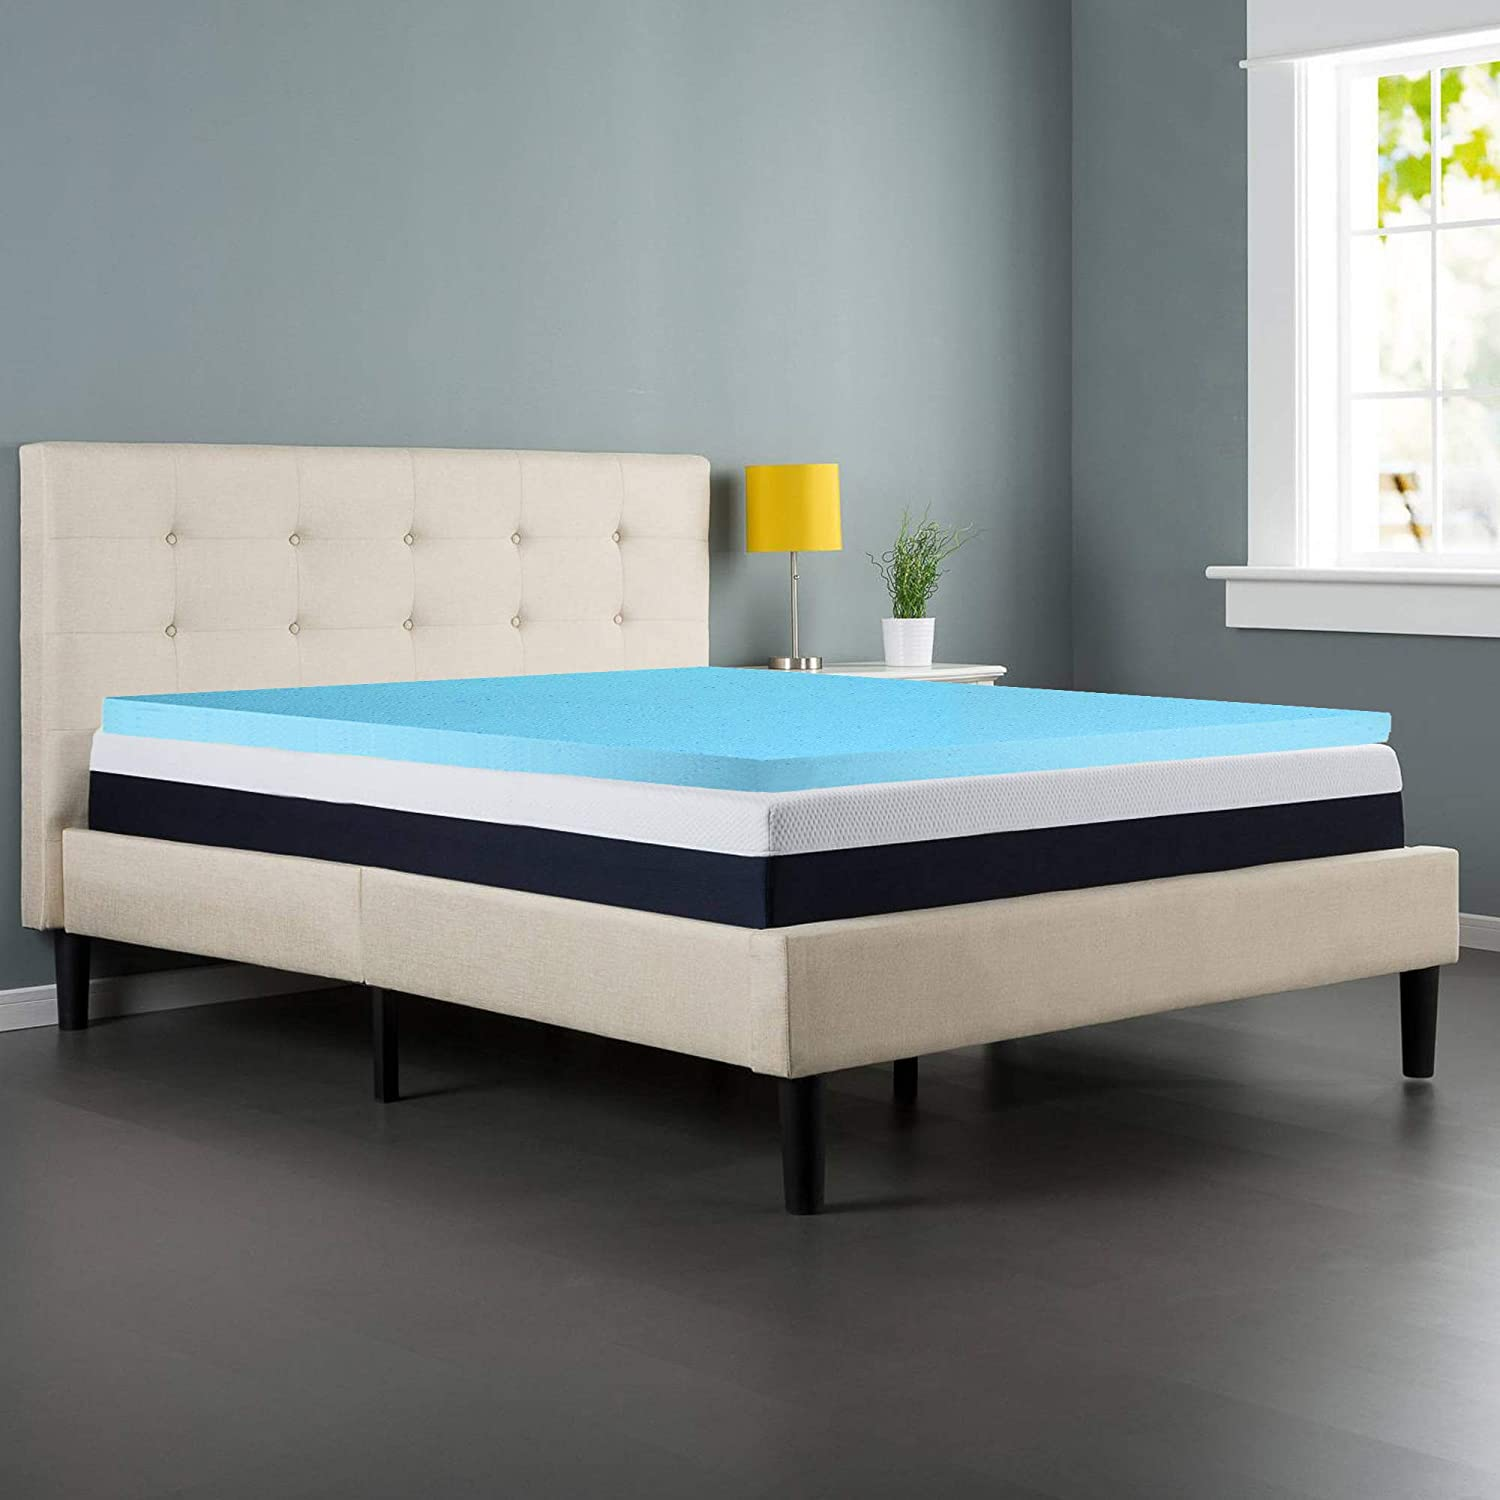 Spring Coil High Density Gel Foam Topper,Adds Comfort to Mattress, Full